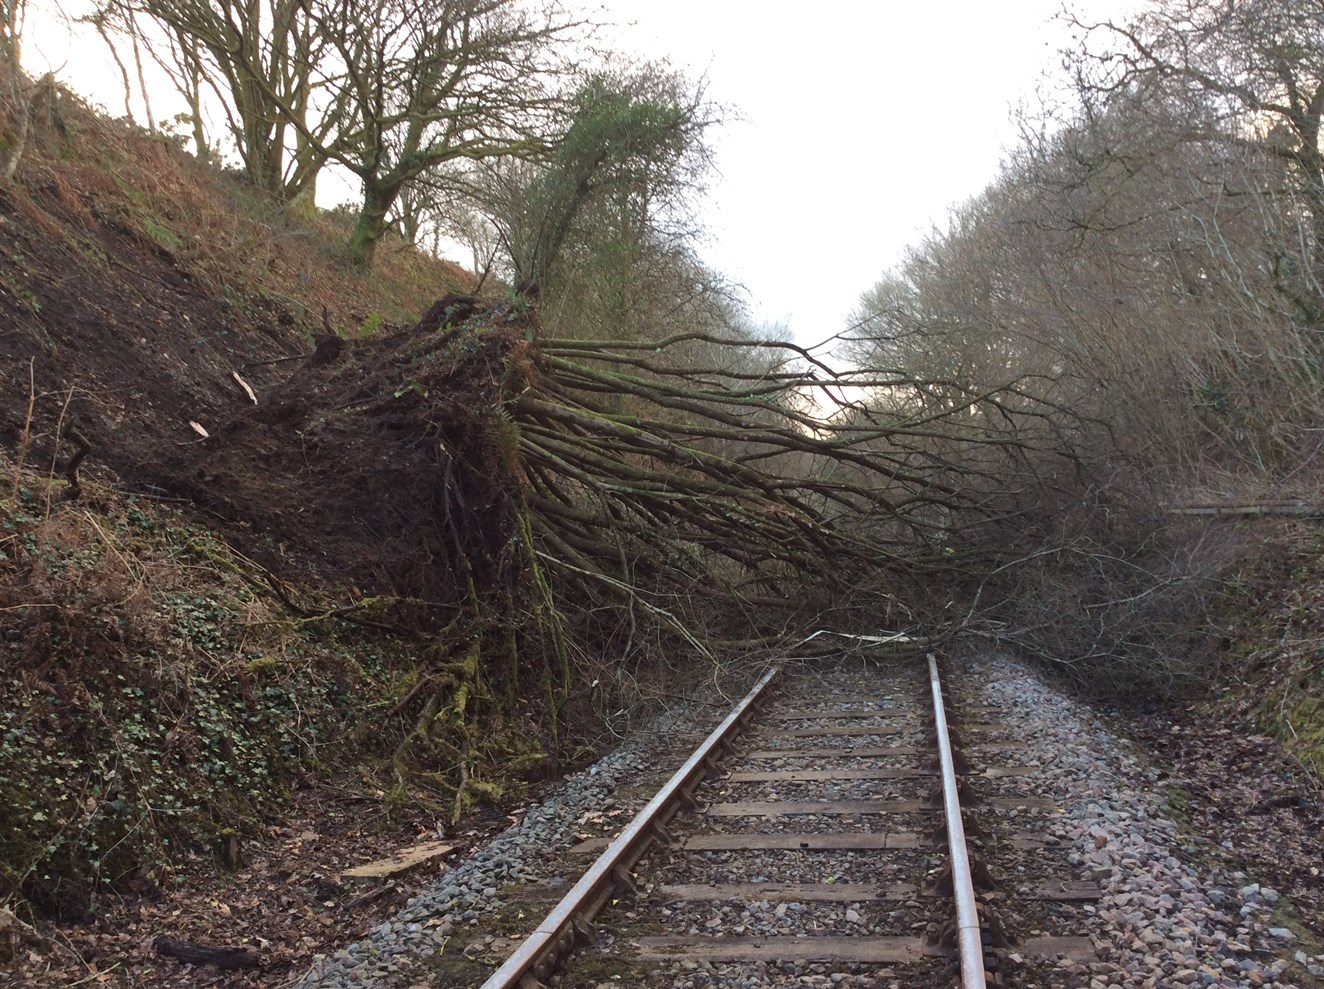 A tree on the line at Cynghordy in Carmarthenshire